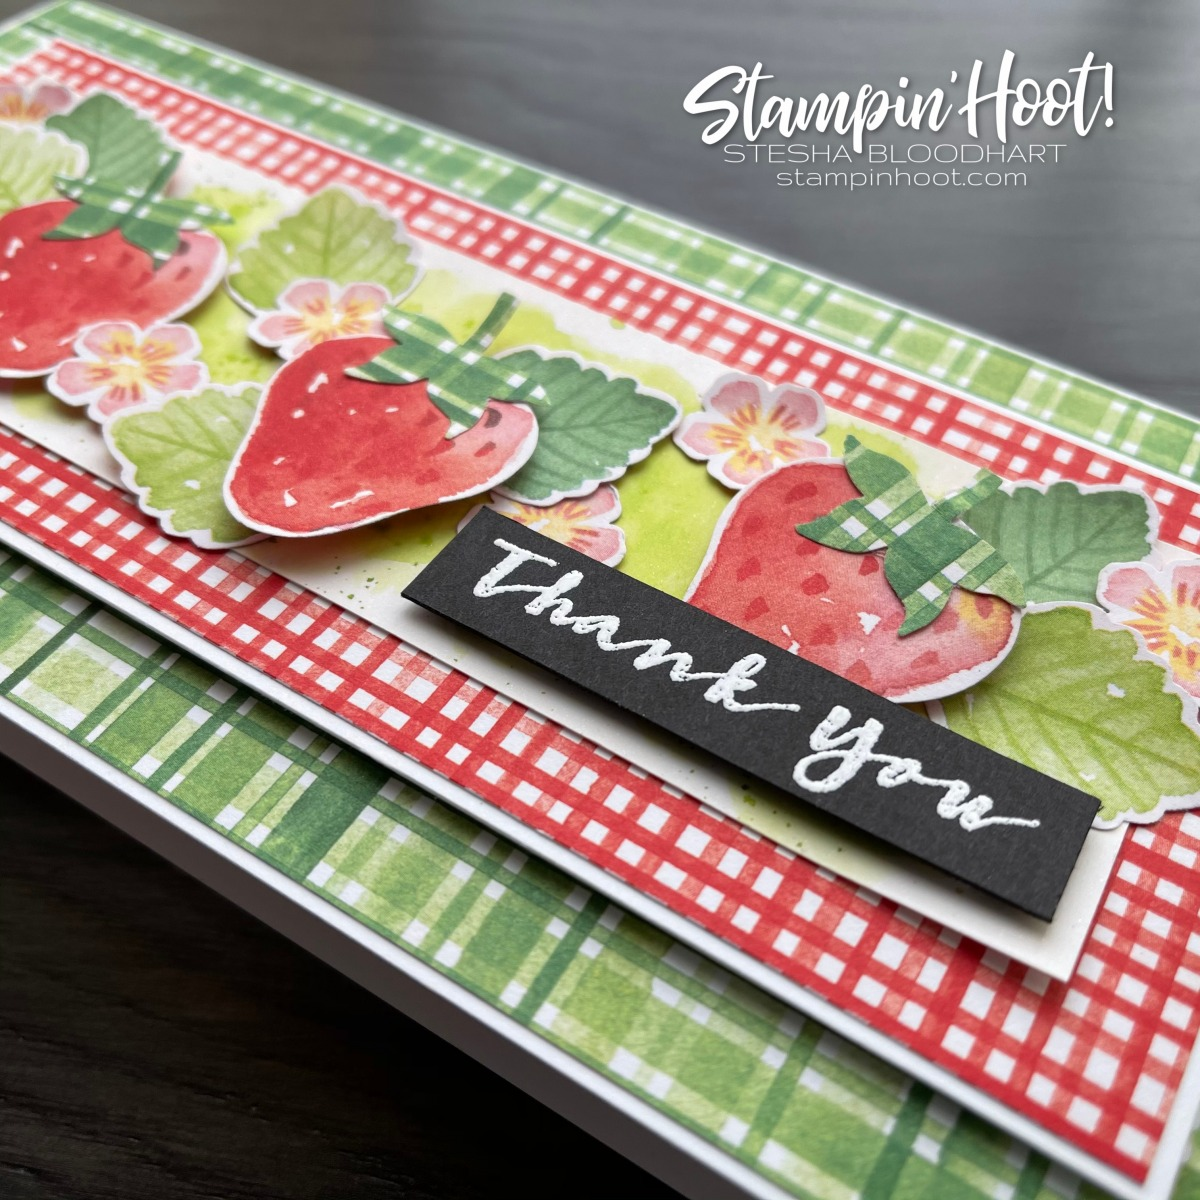 Berry Blessings Stamp Set & Berry Delightful DSP FREE With $100 Purchase - Card by Stesha Bloodhart, Stampin' Hoot! Thank You Slimline Card